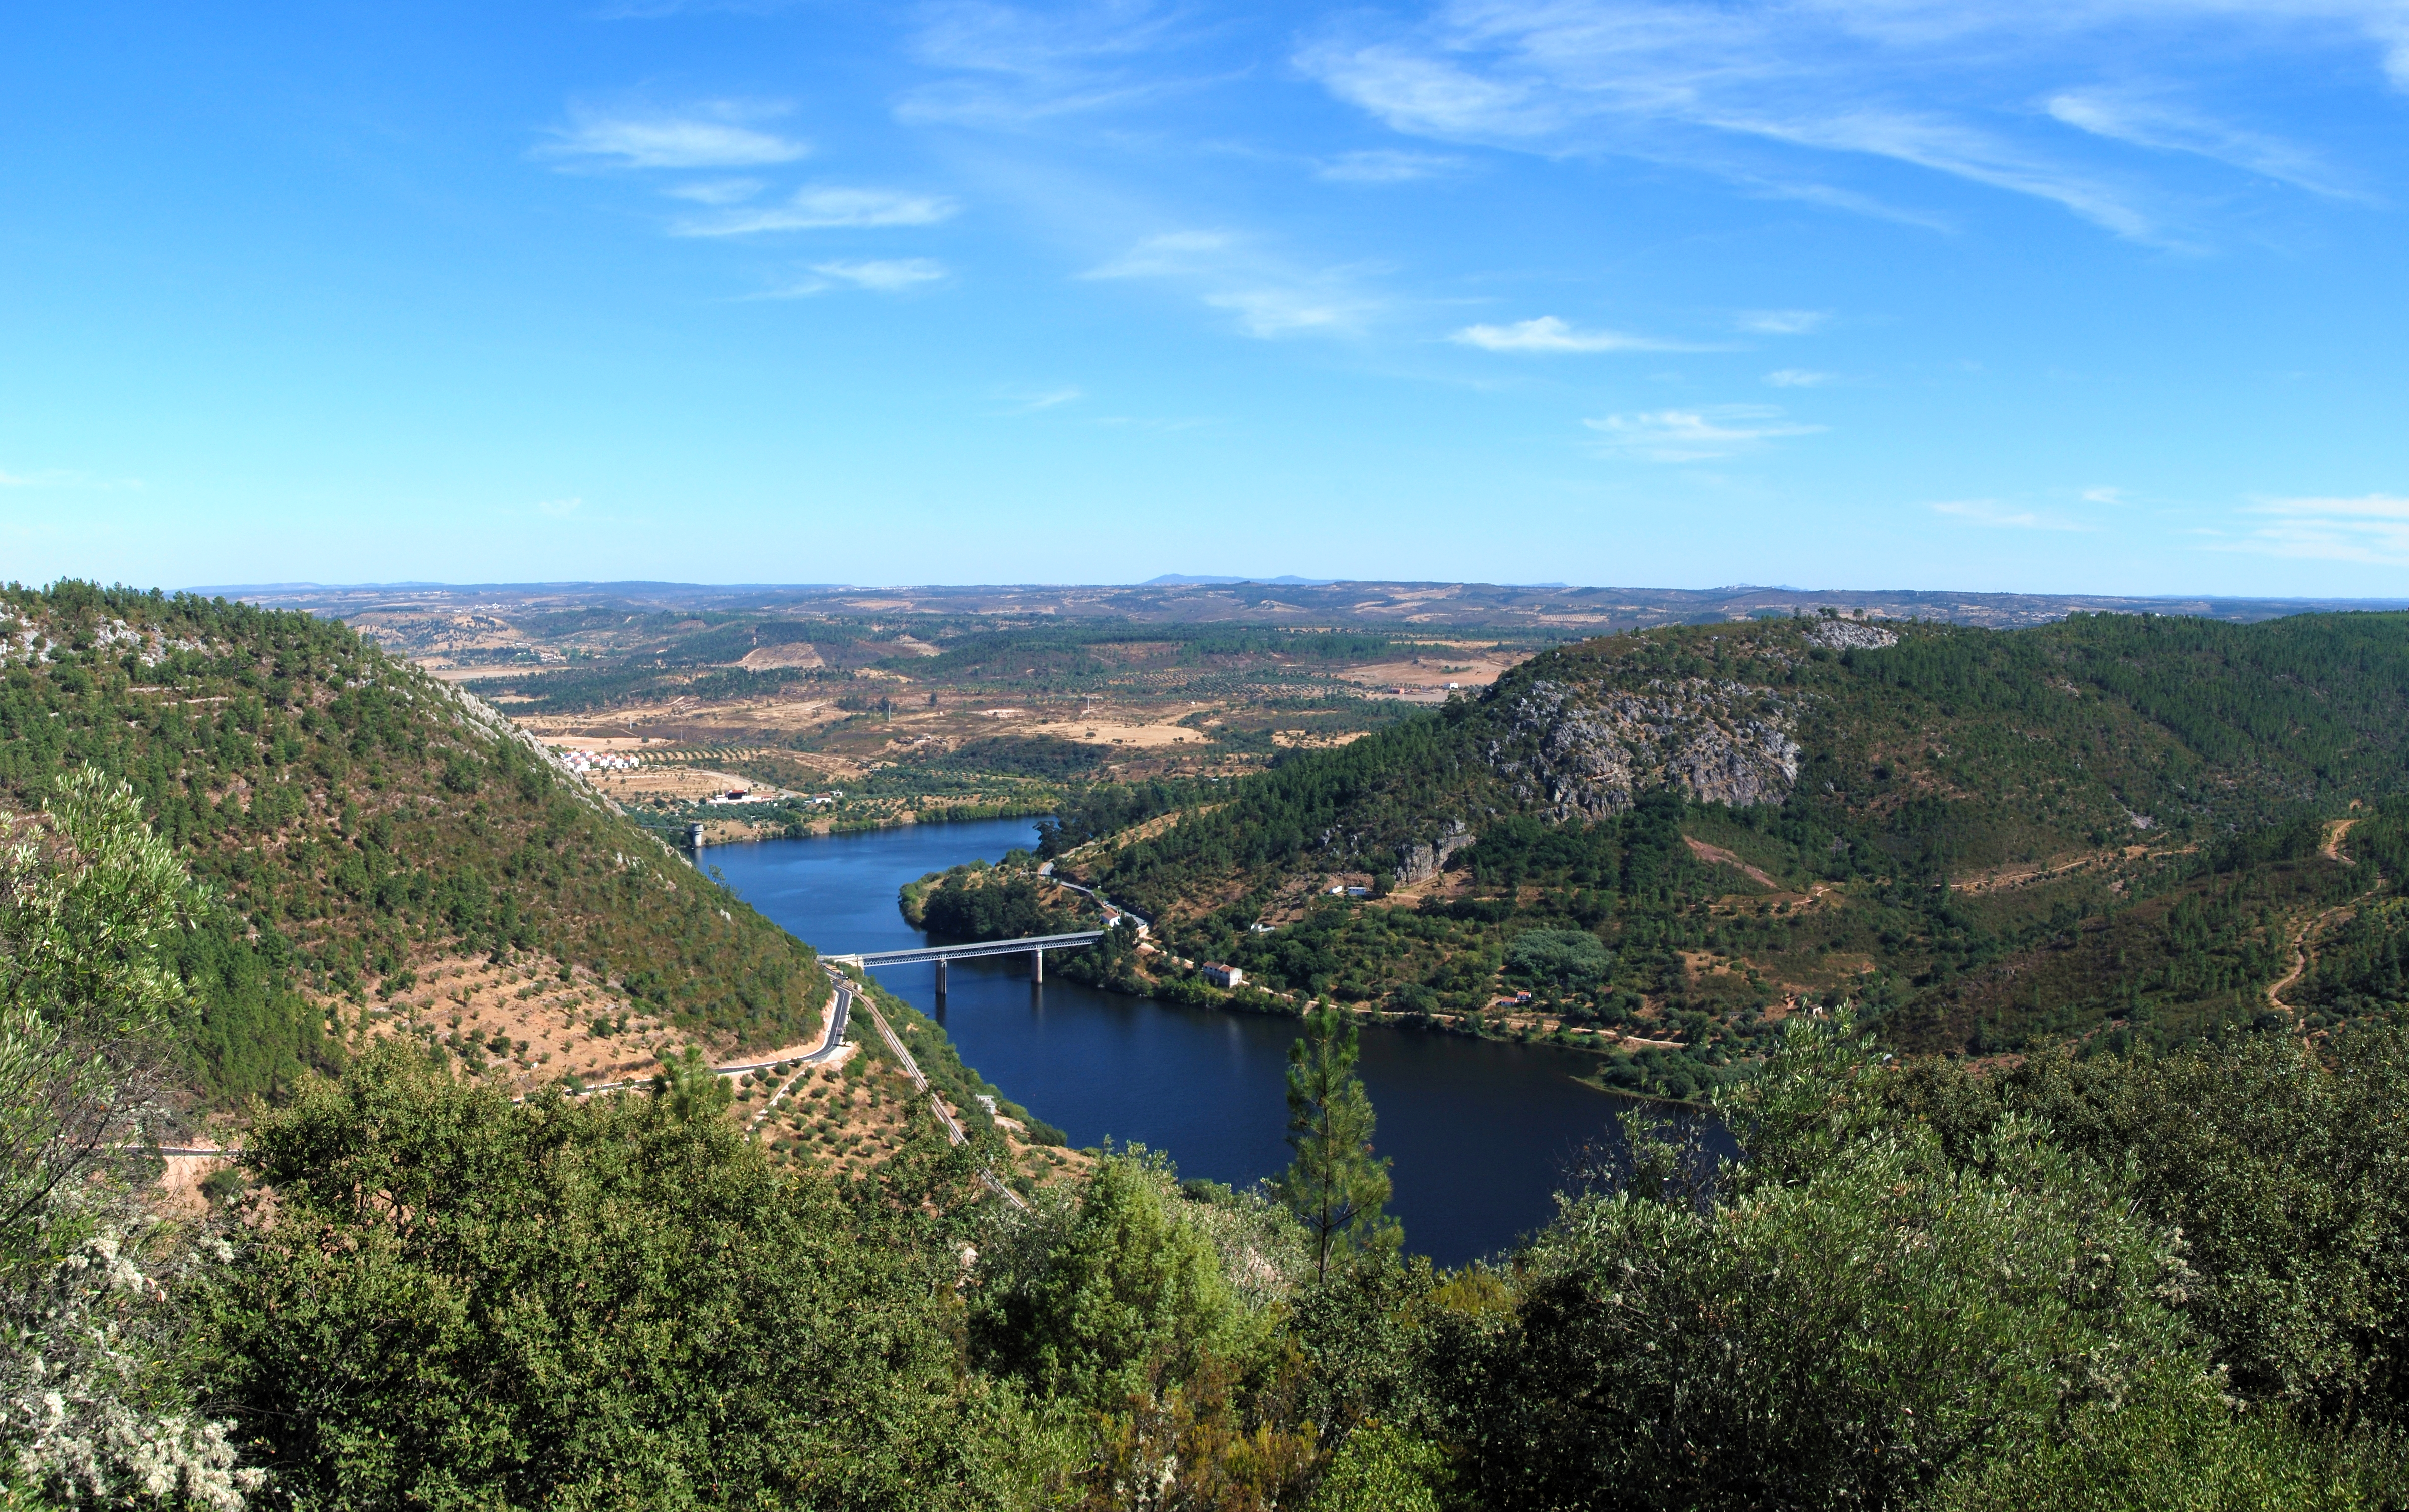 The Tagus River is the longest river on the Iberian Peninsula